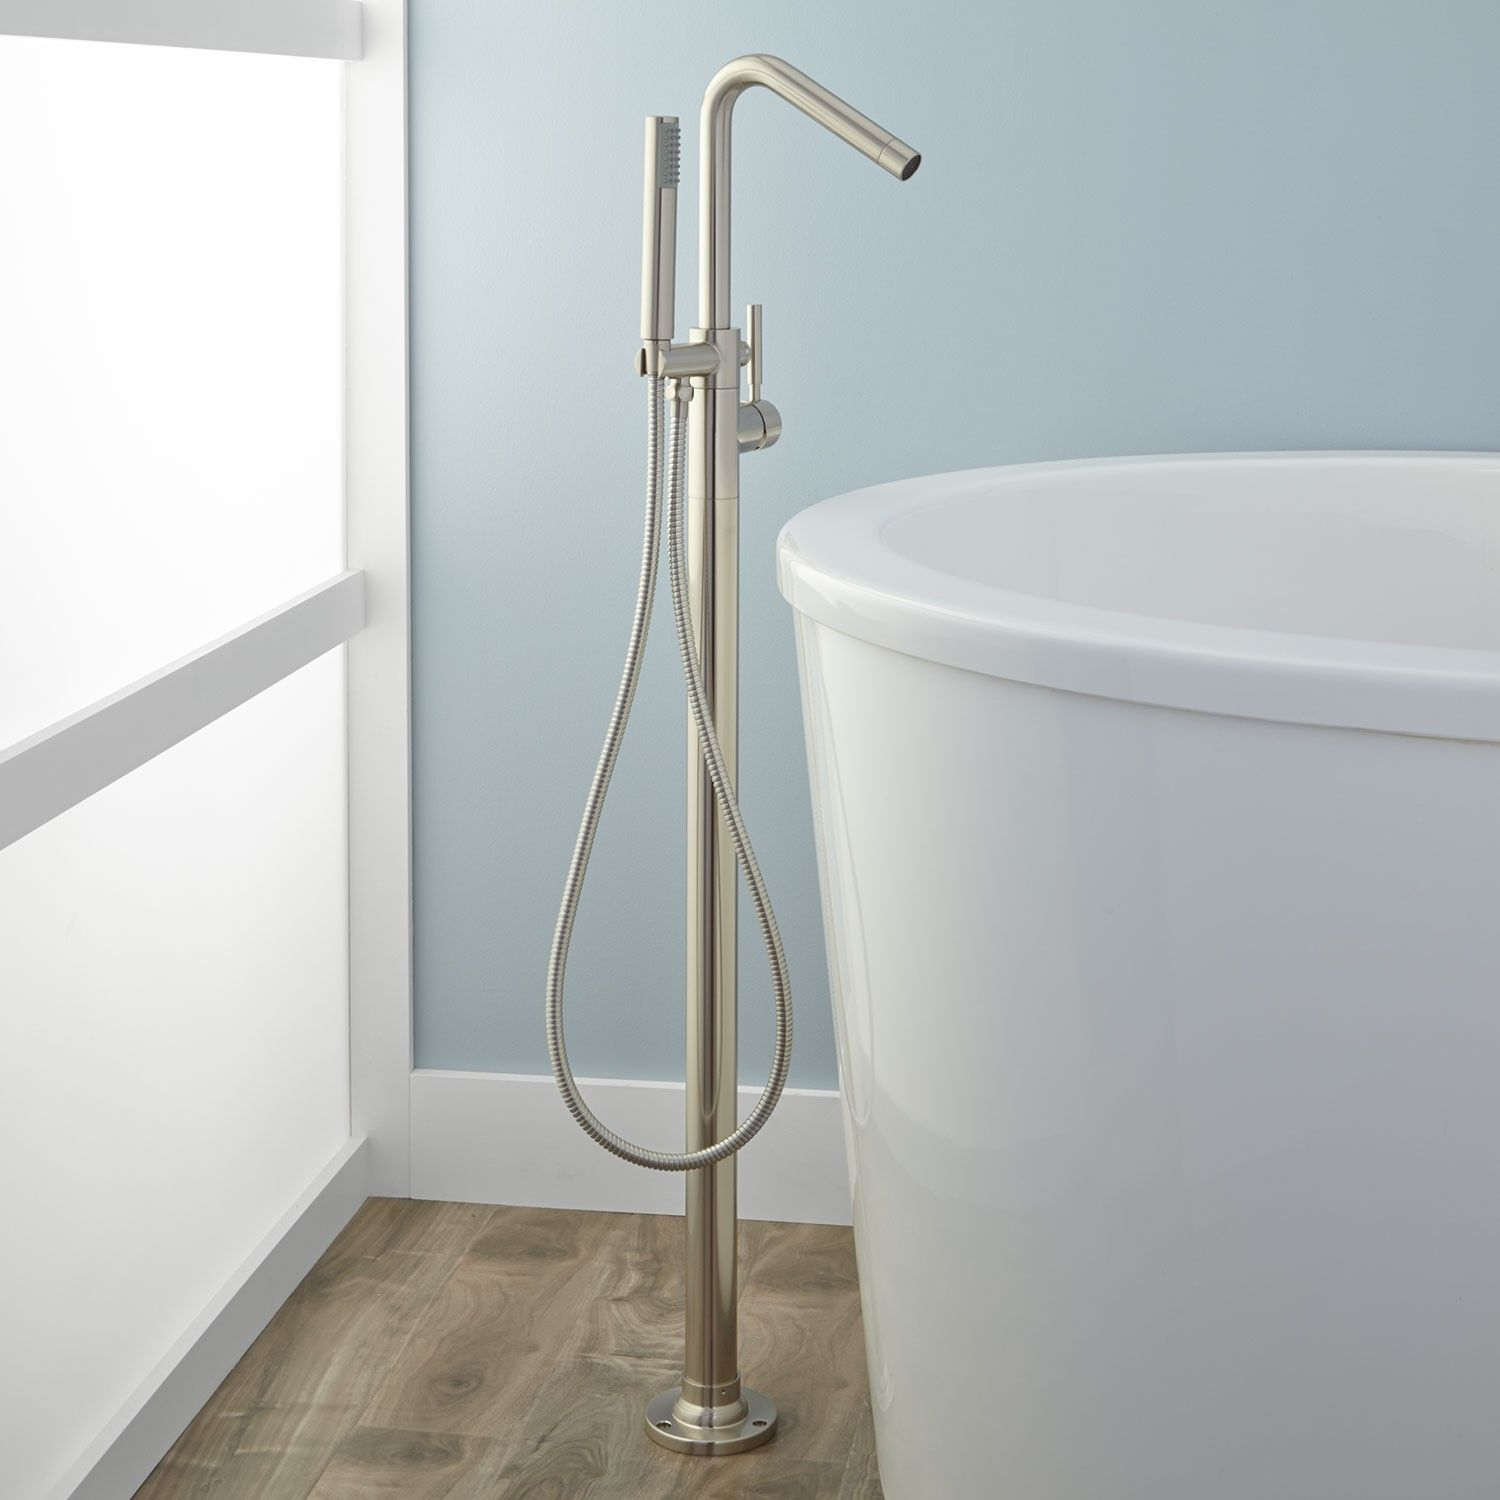 Park Art|My WordPress Blog_How To Install A Freestanding Tub Faucet